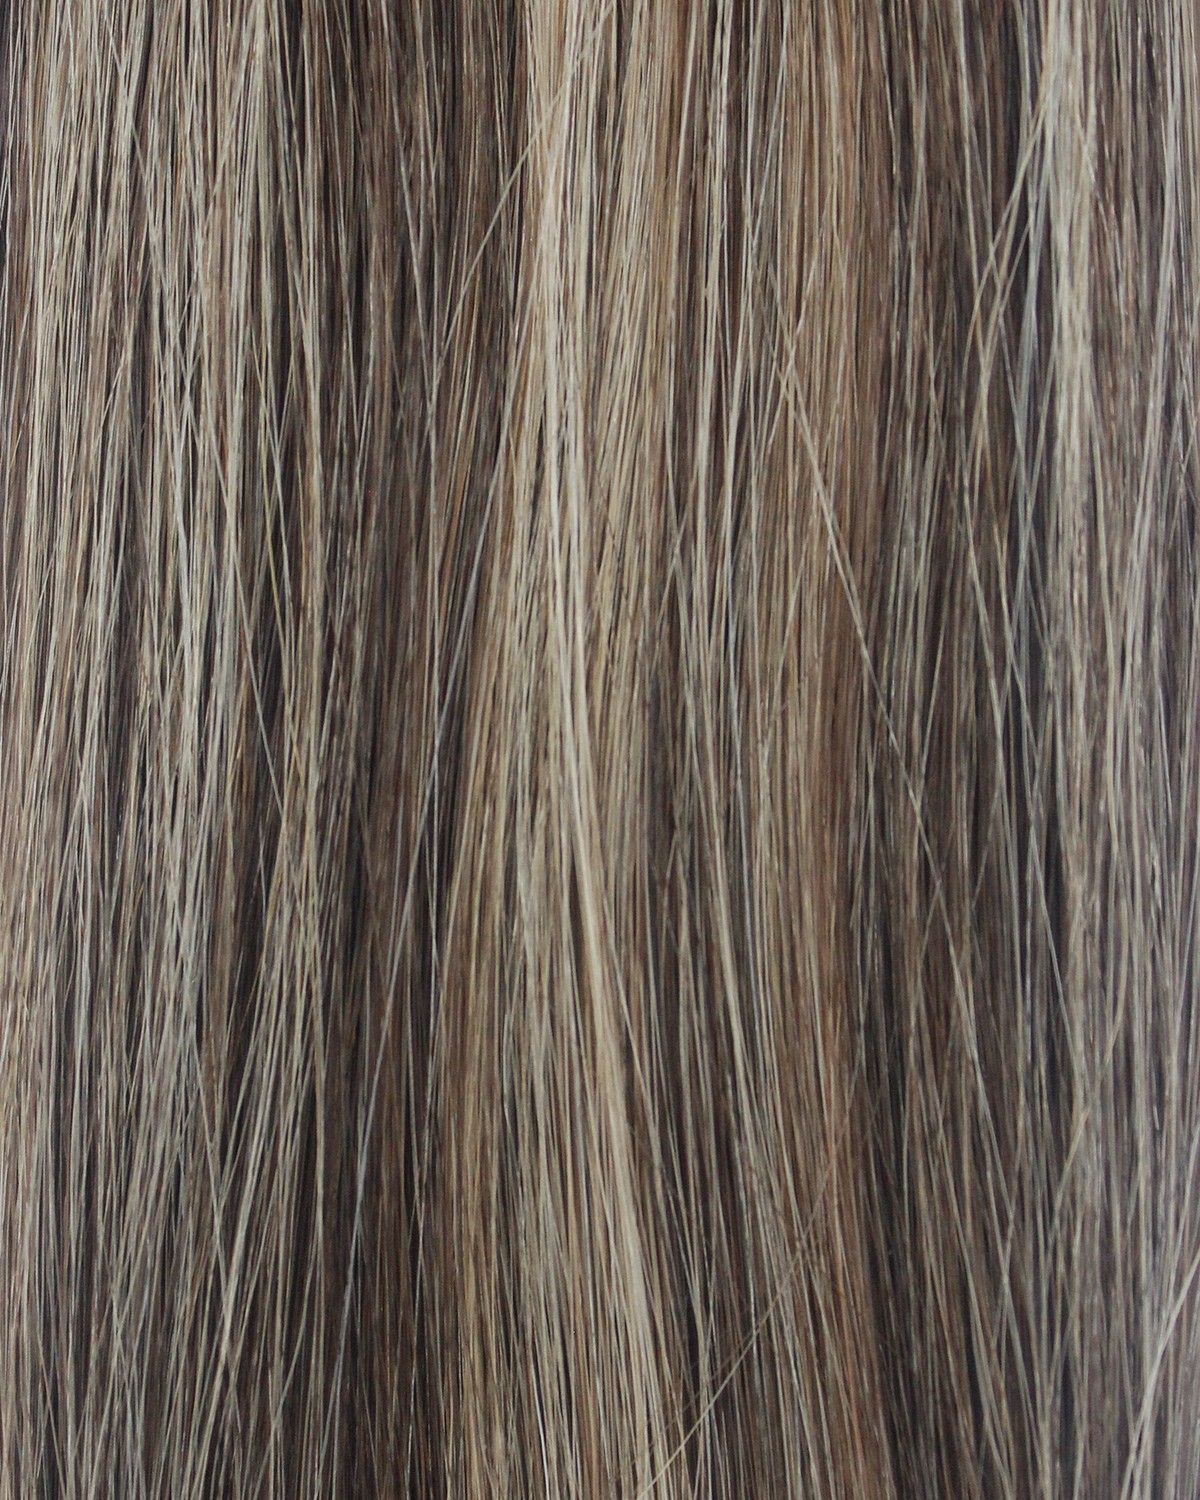 Our Lionesse Micro Bead Hair Extensions Let You Add Gorgeous Length